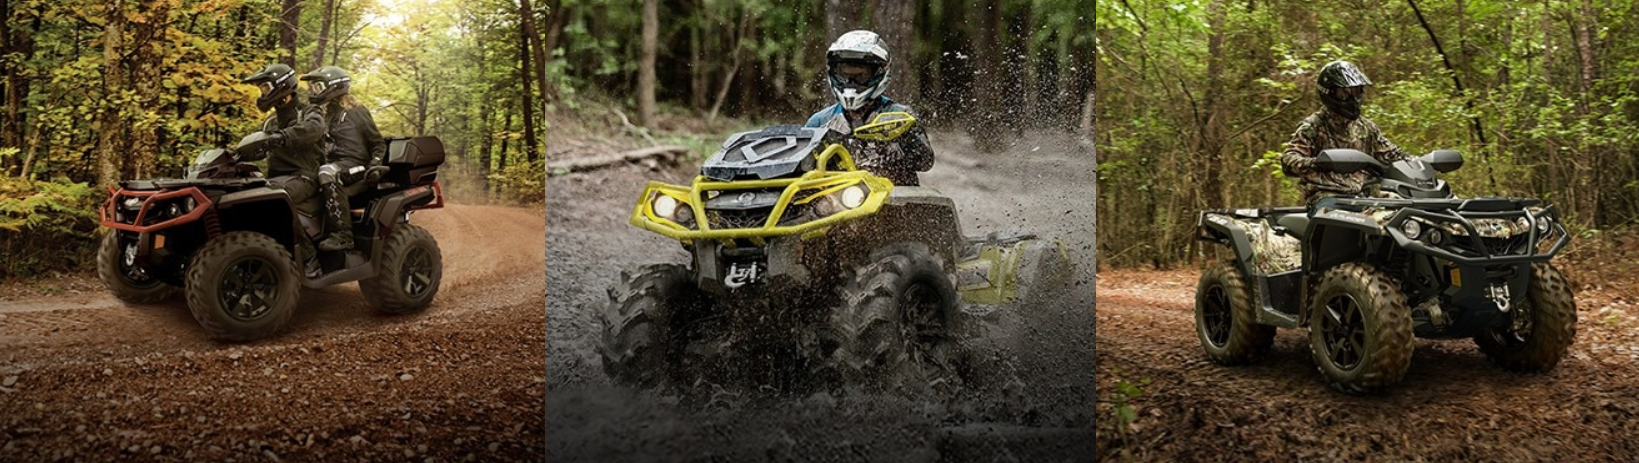 The Re-imagined 2019 Can-Am Outlander - New ATV Products